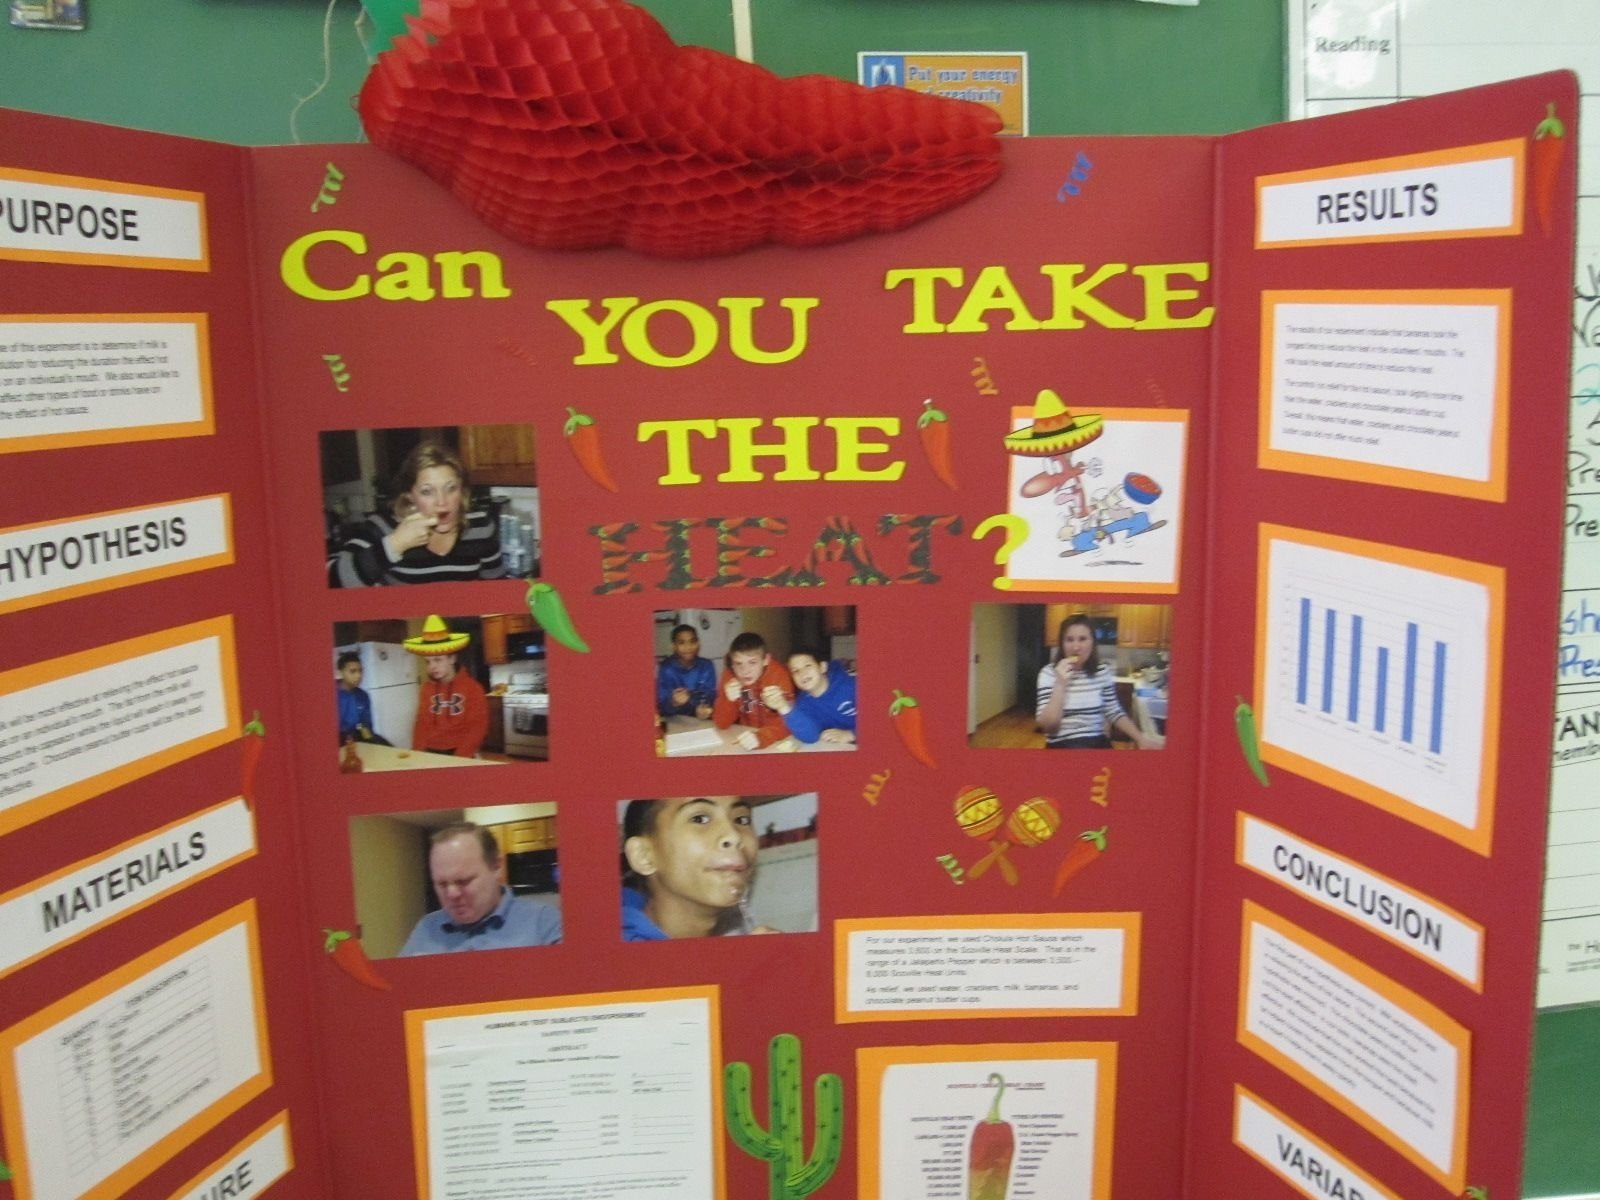 10 Ideal Science Fair Projects Ideas For 8Th Grade second grade science fair topics learnkids science im kinda 20 2020